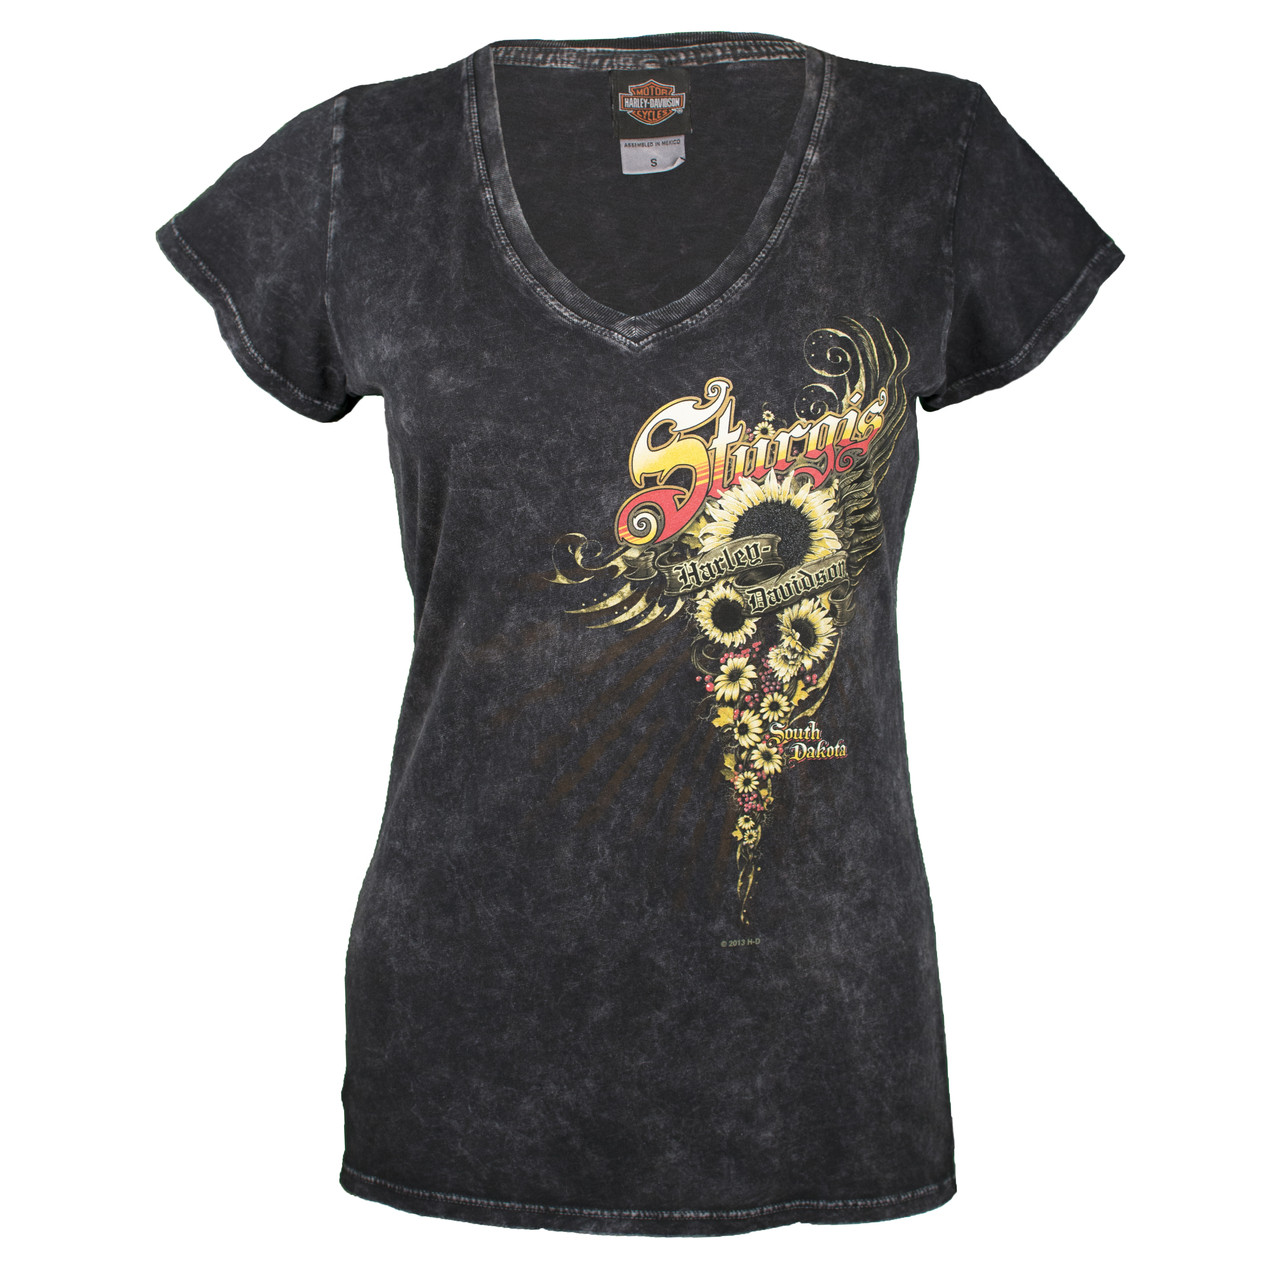 Sturgis Harley-Davidson® Women's Sunflower Black Mineral Wash Short Sleeve T-Shirt